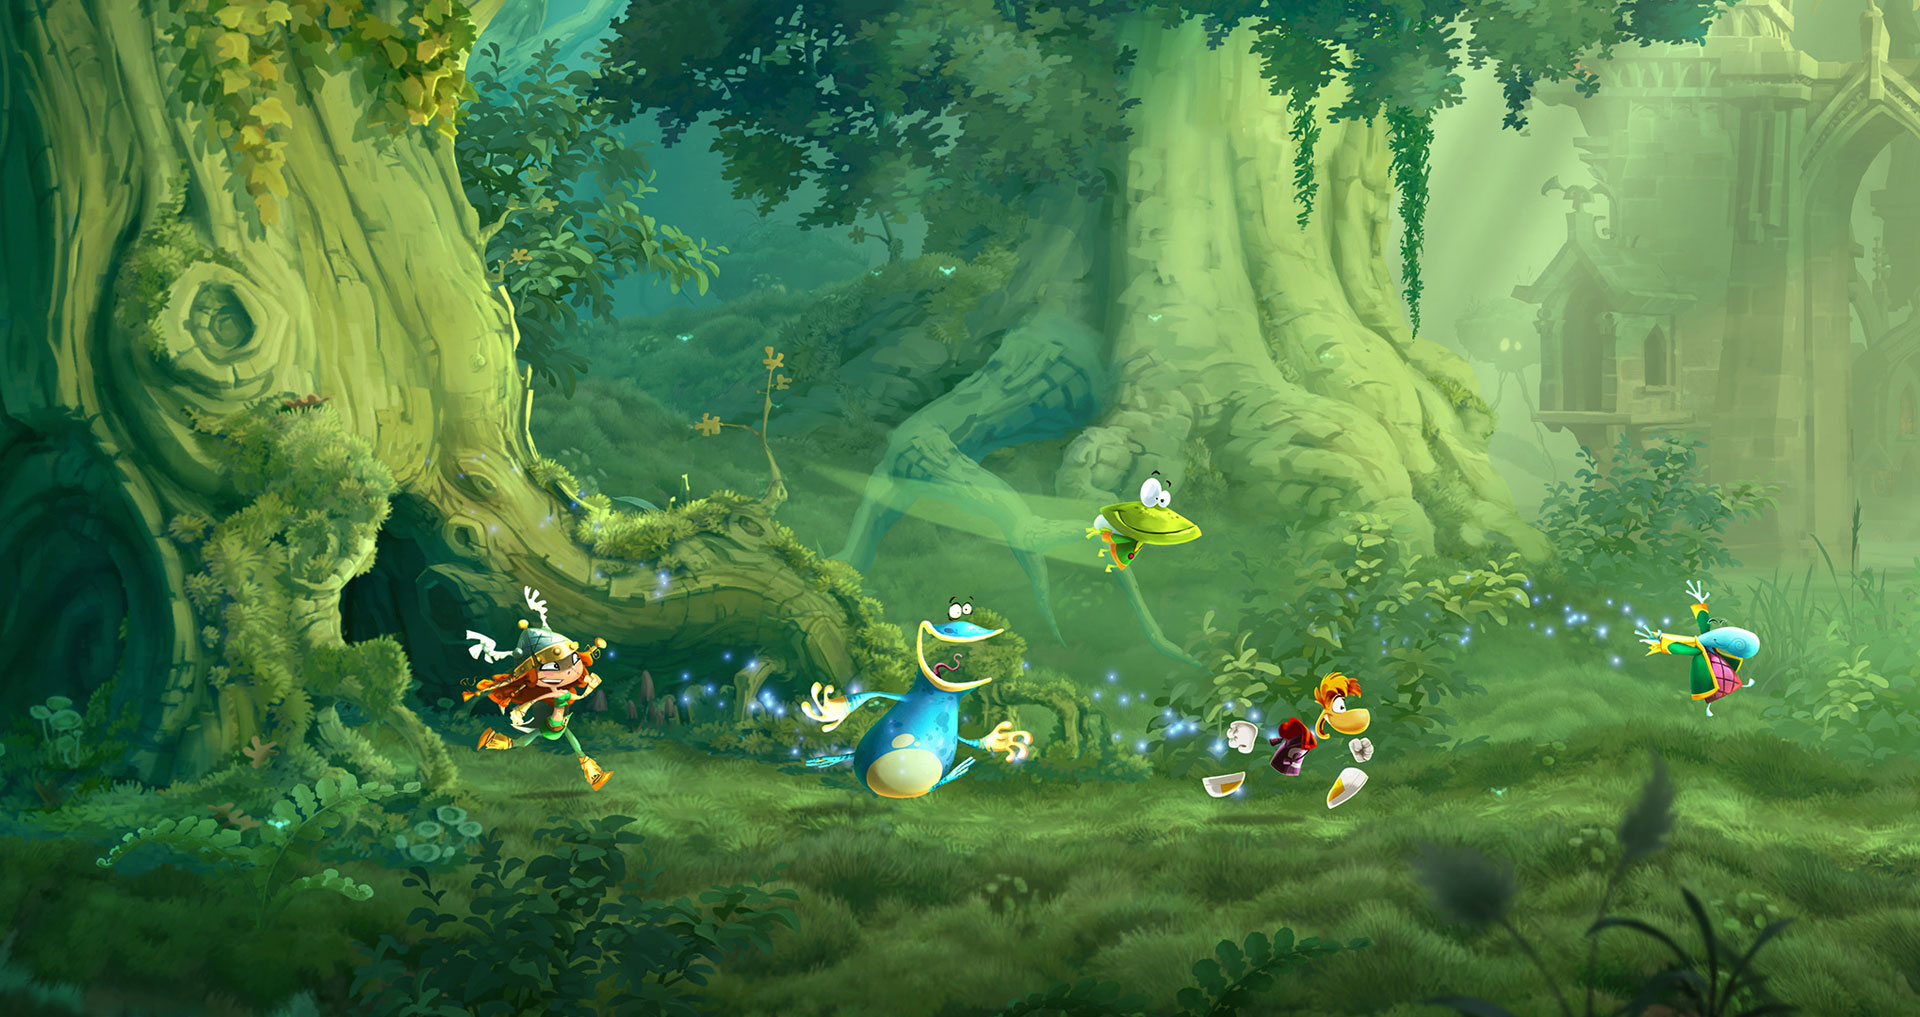 'Rayman Legends' hits Sept. 3 in North America, Aug. 30 in Europe